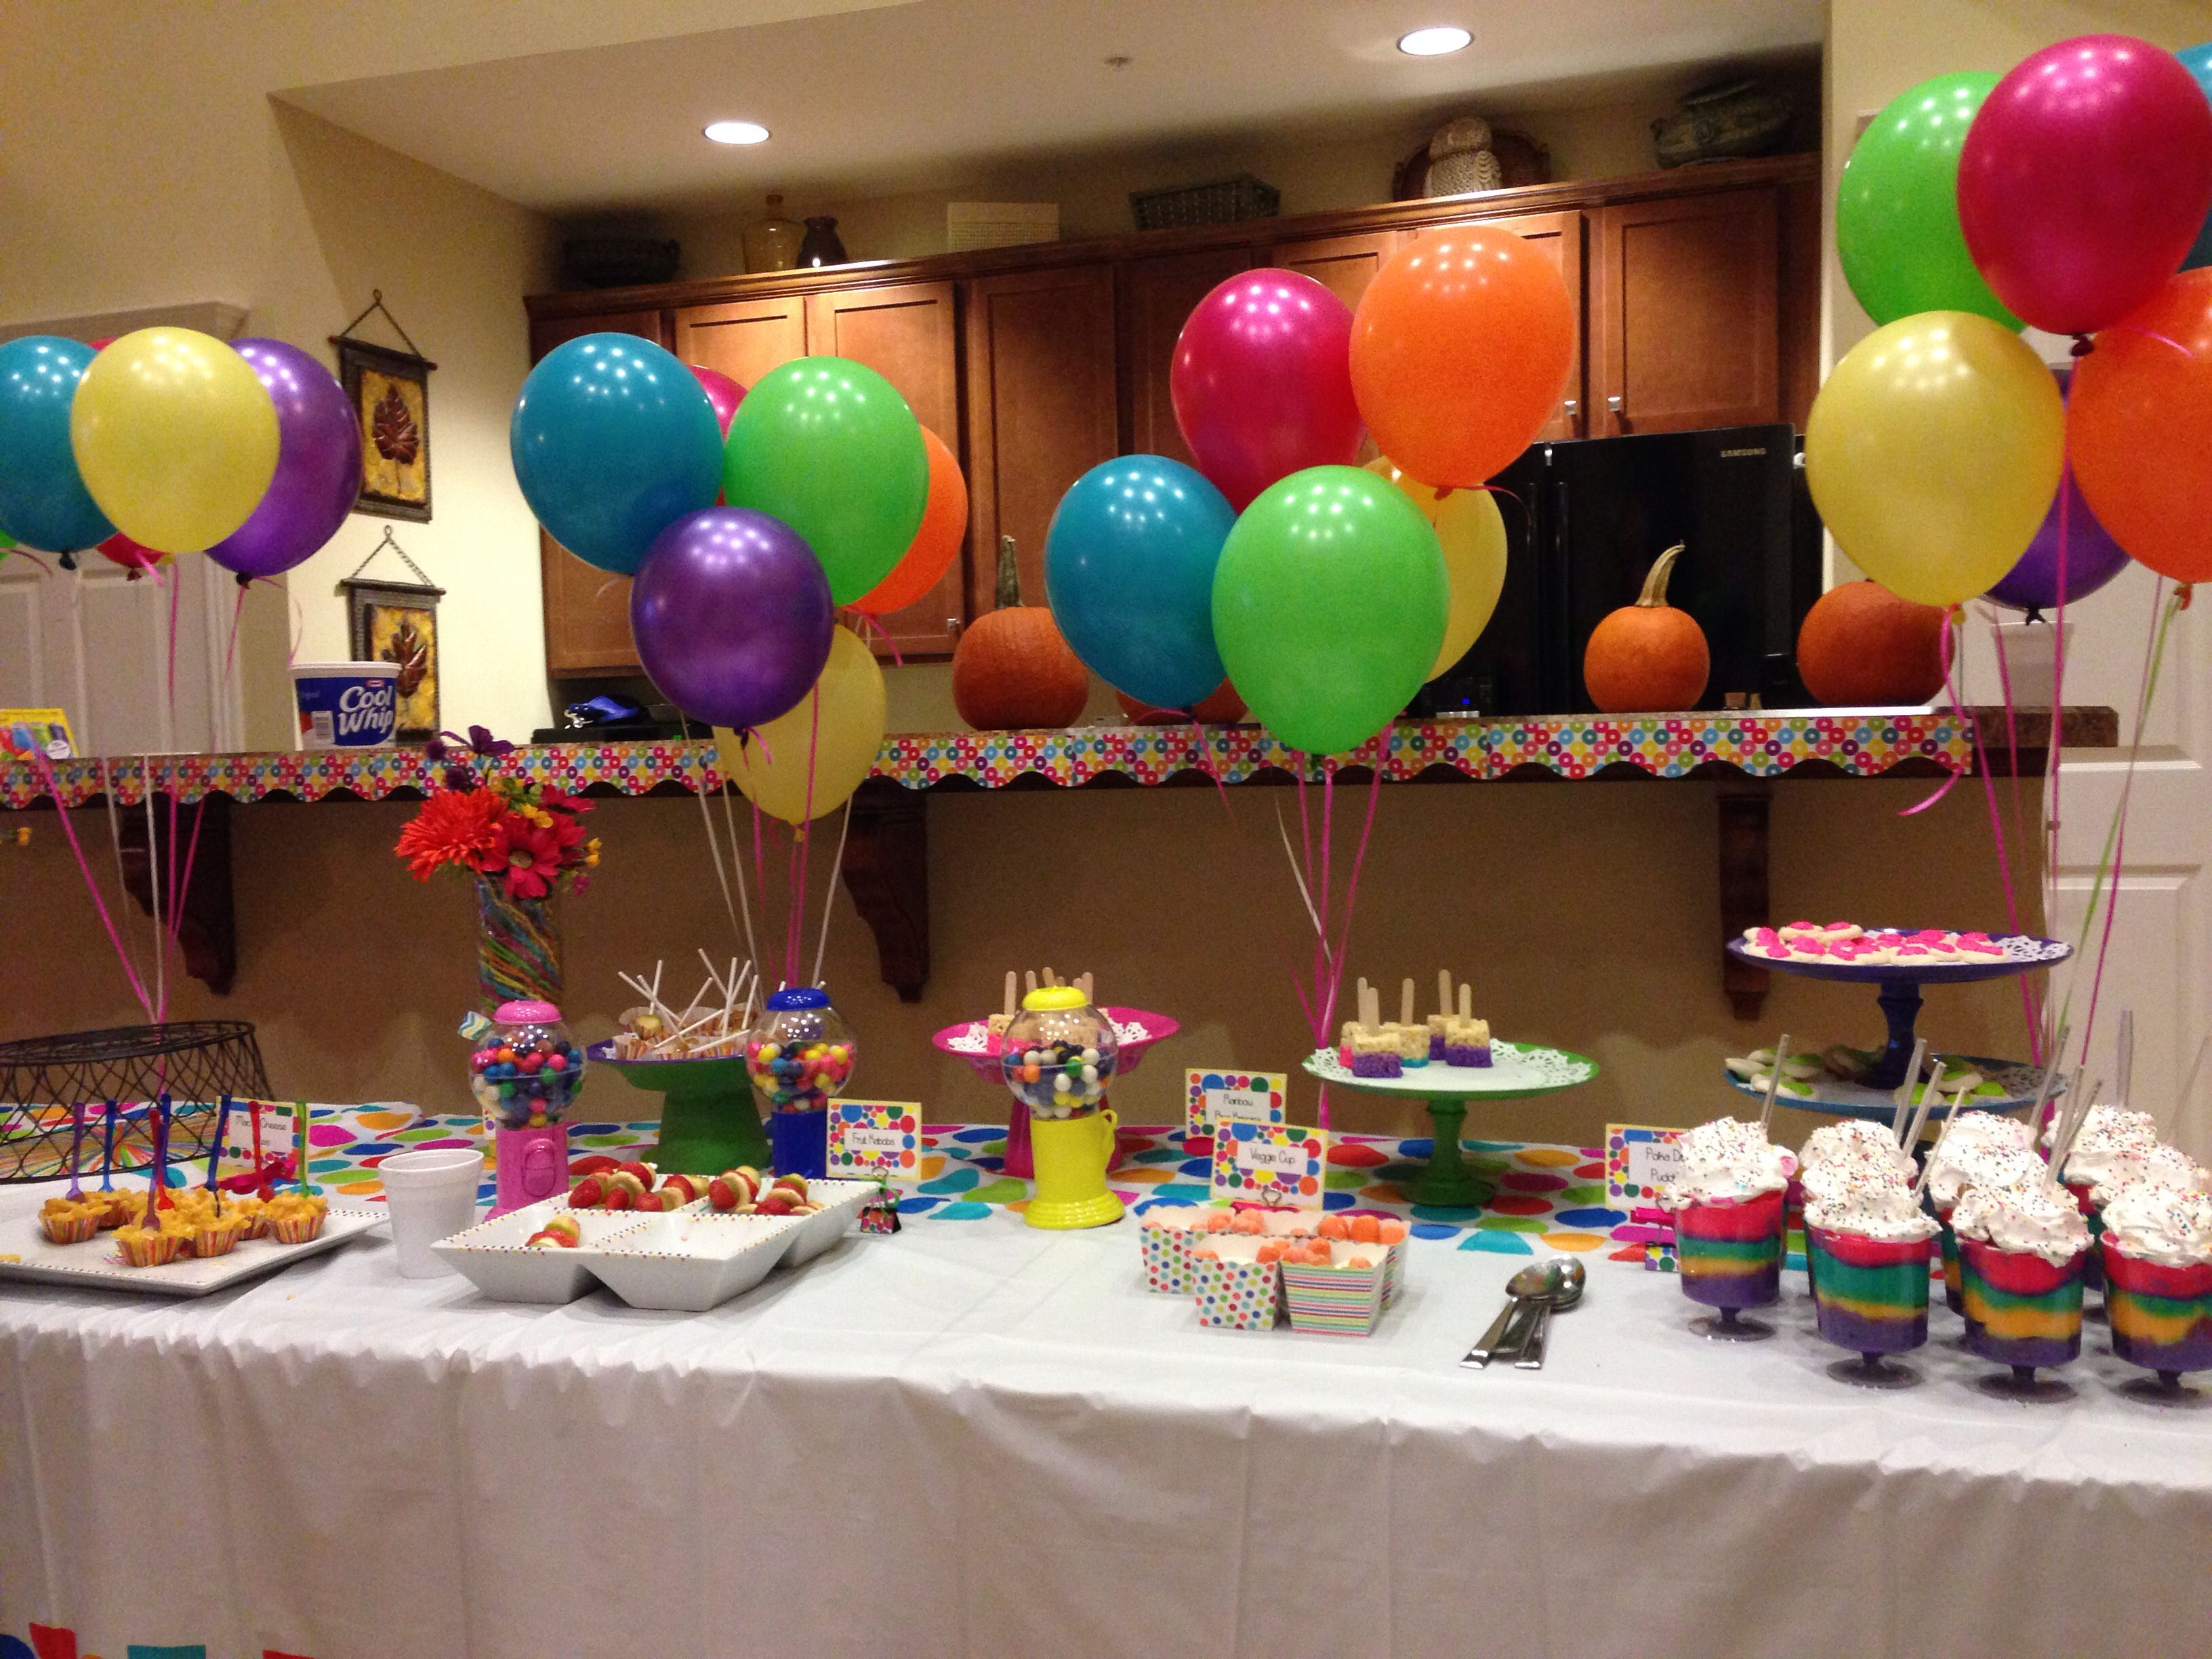 4 Year Old Birthday Party Ideas Party Ideas for Kids